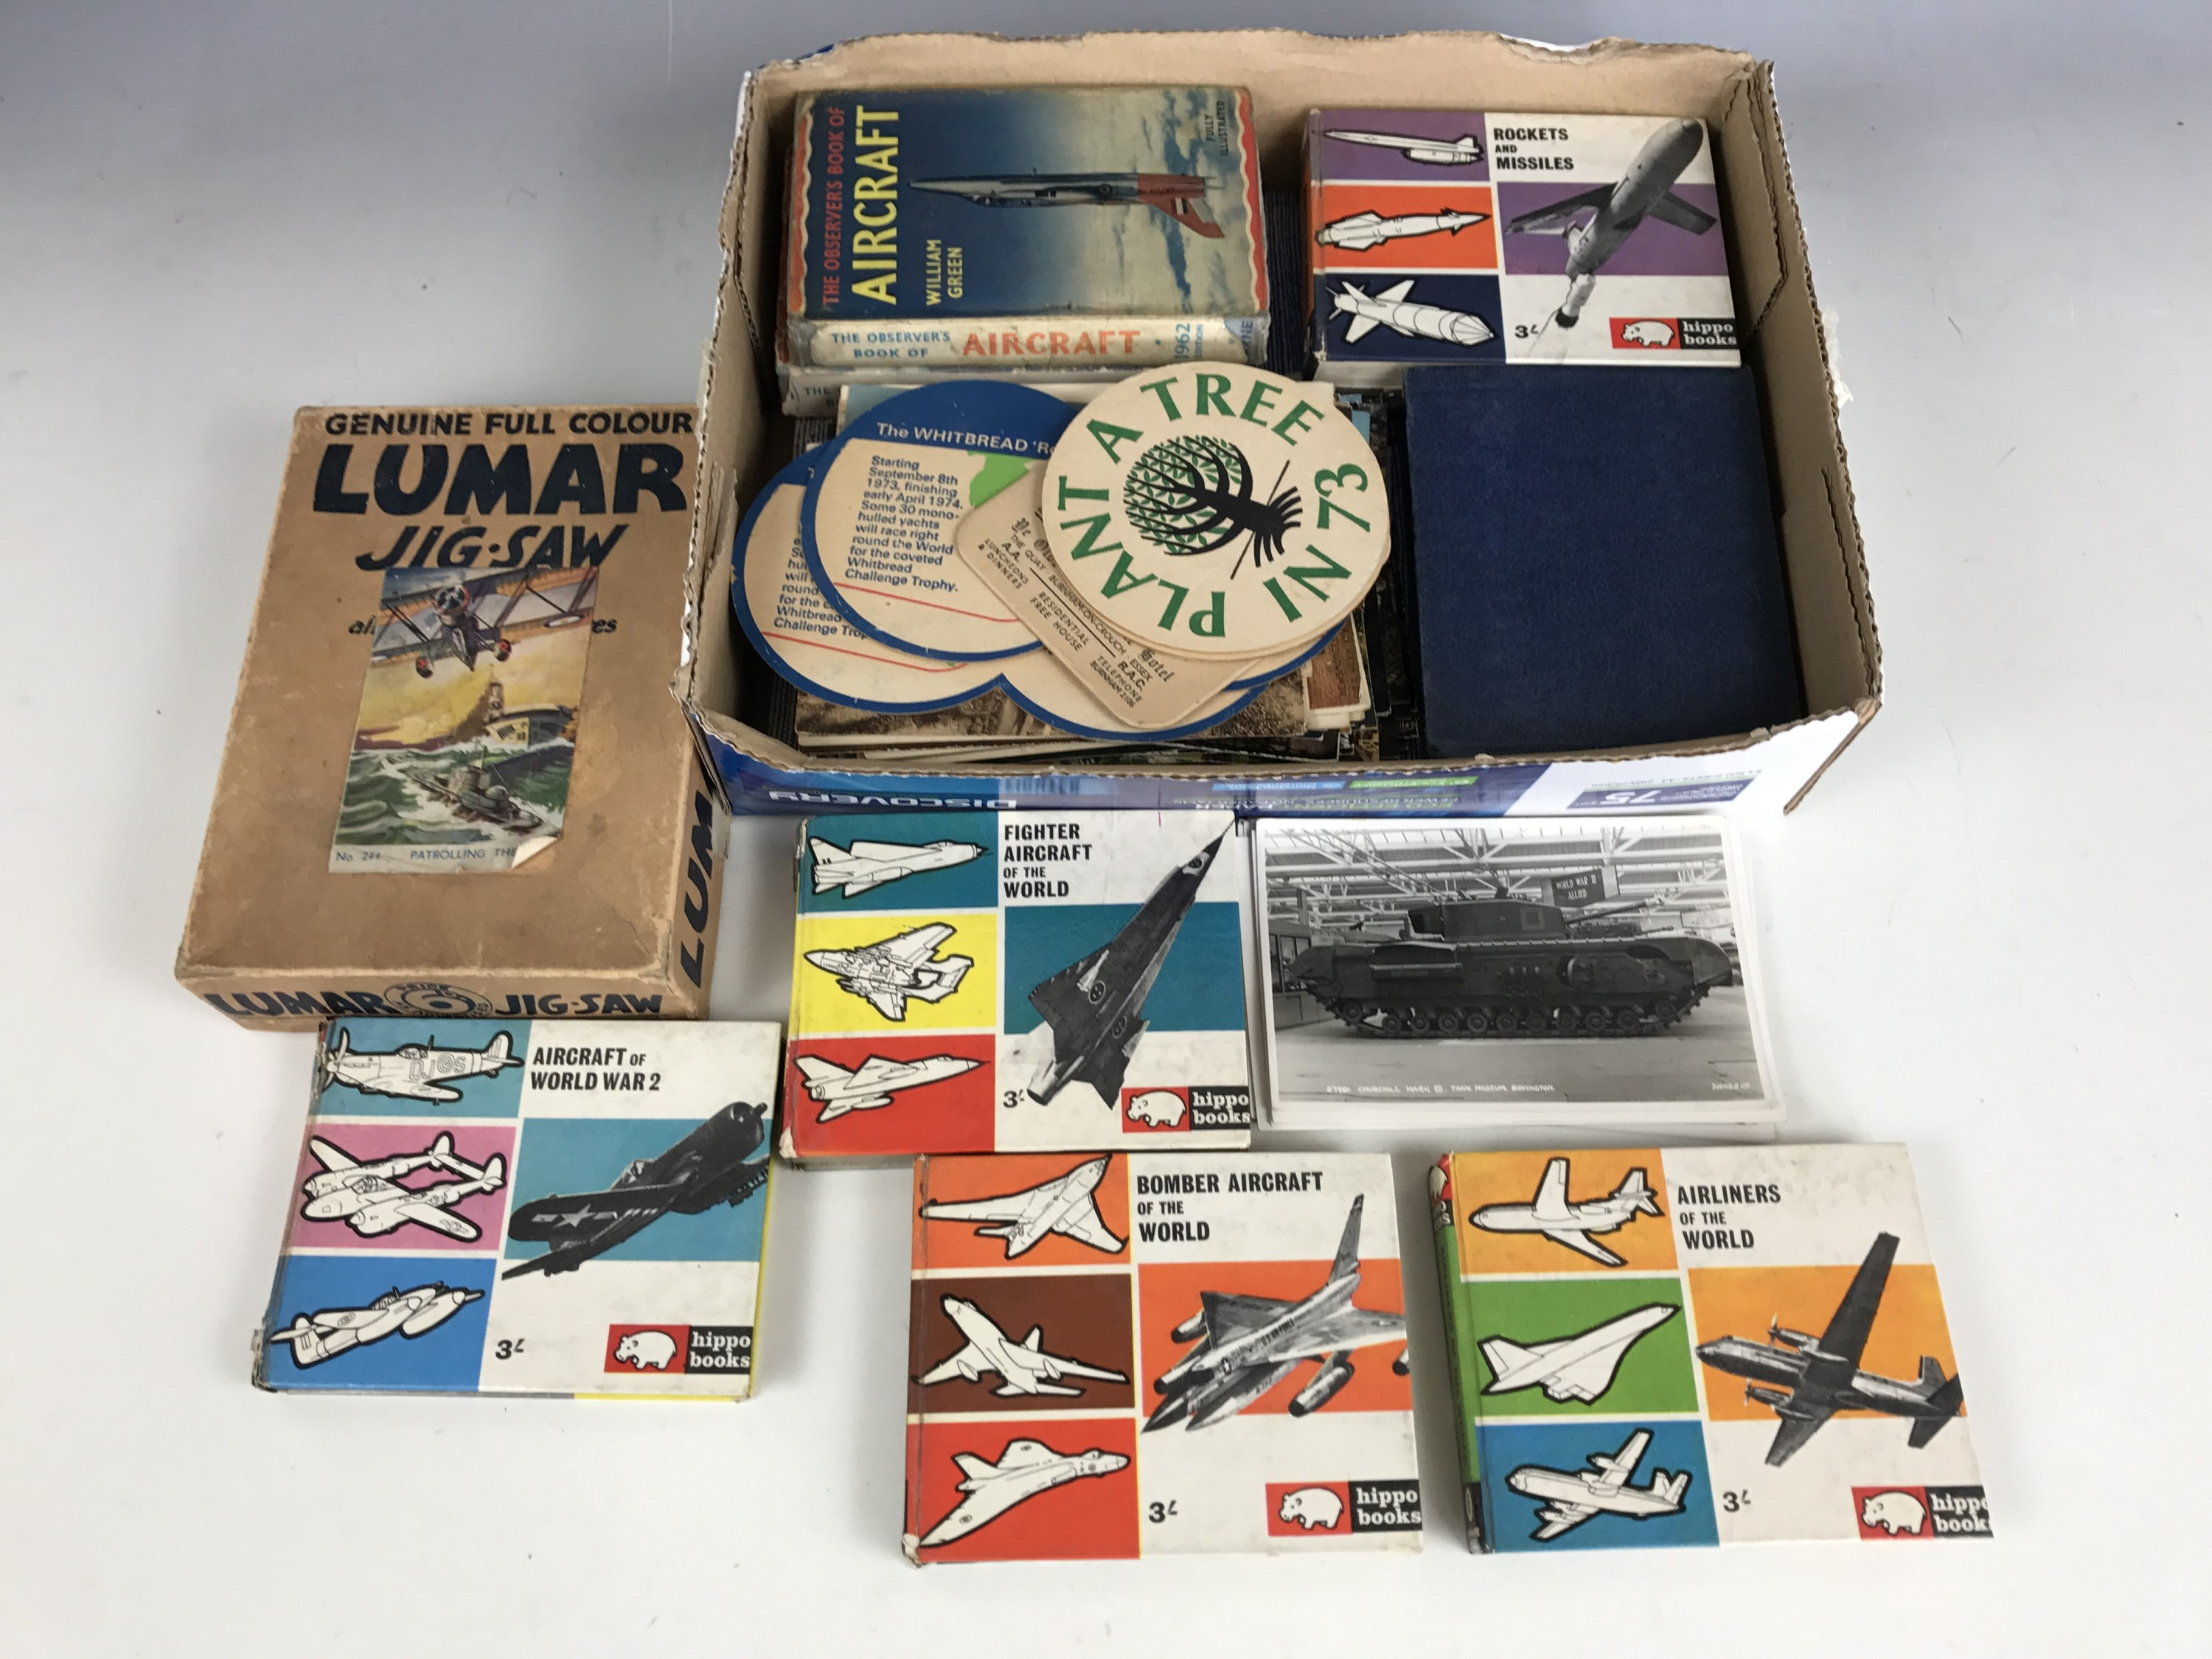 Lot 16 - [Military / Aviation] A 1930 Lumar jigsaw Patrolling The Sea, together with various books on